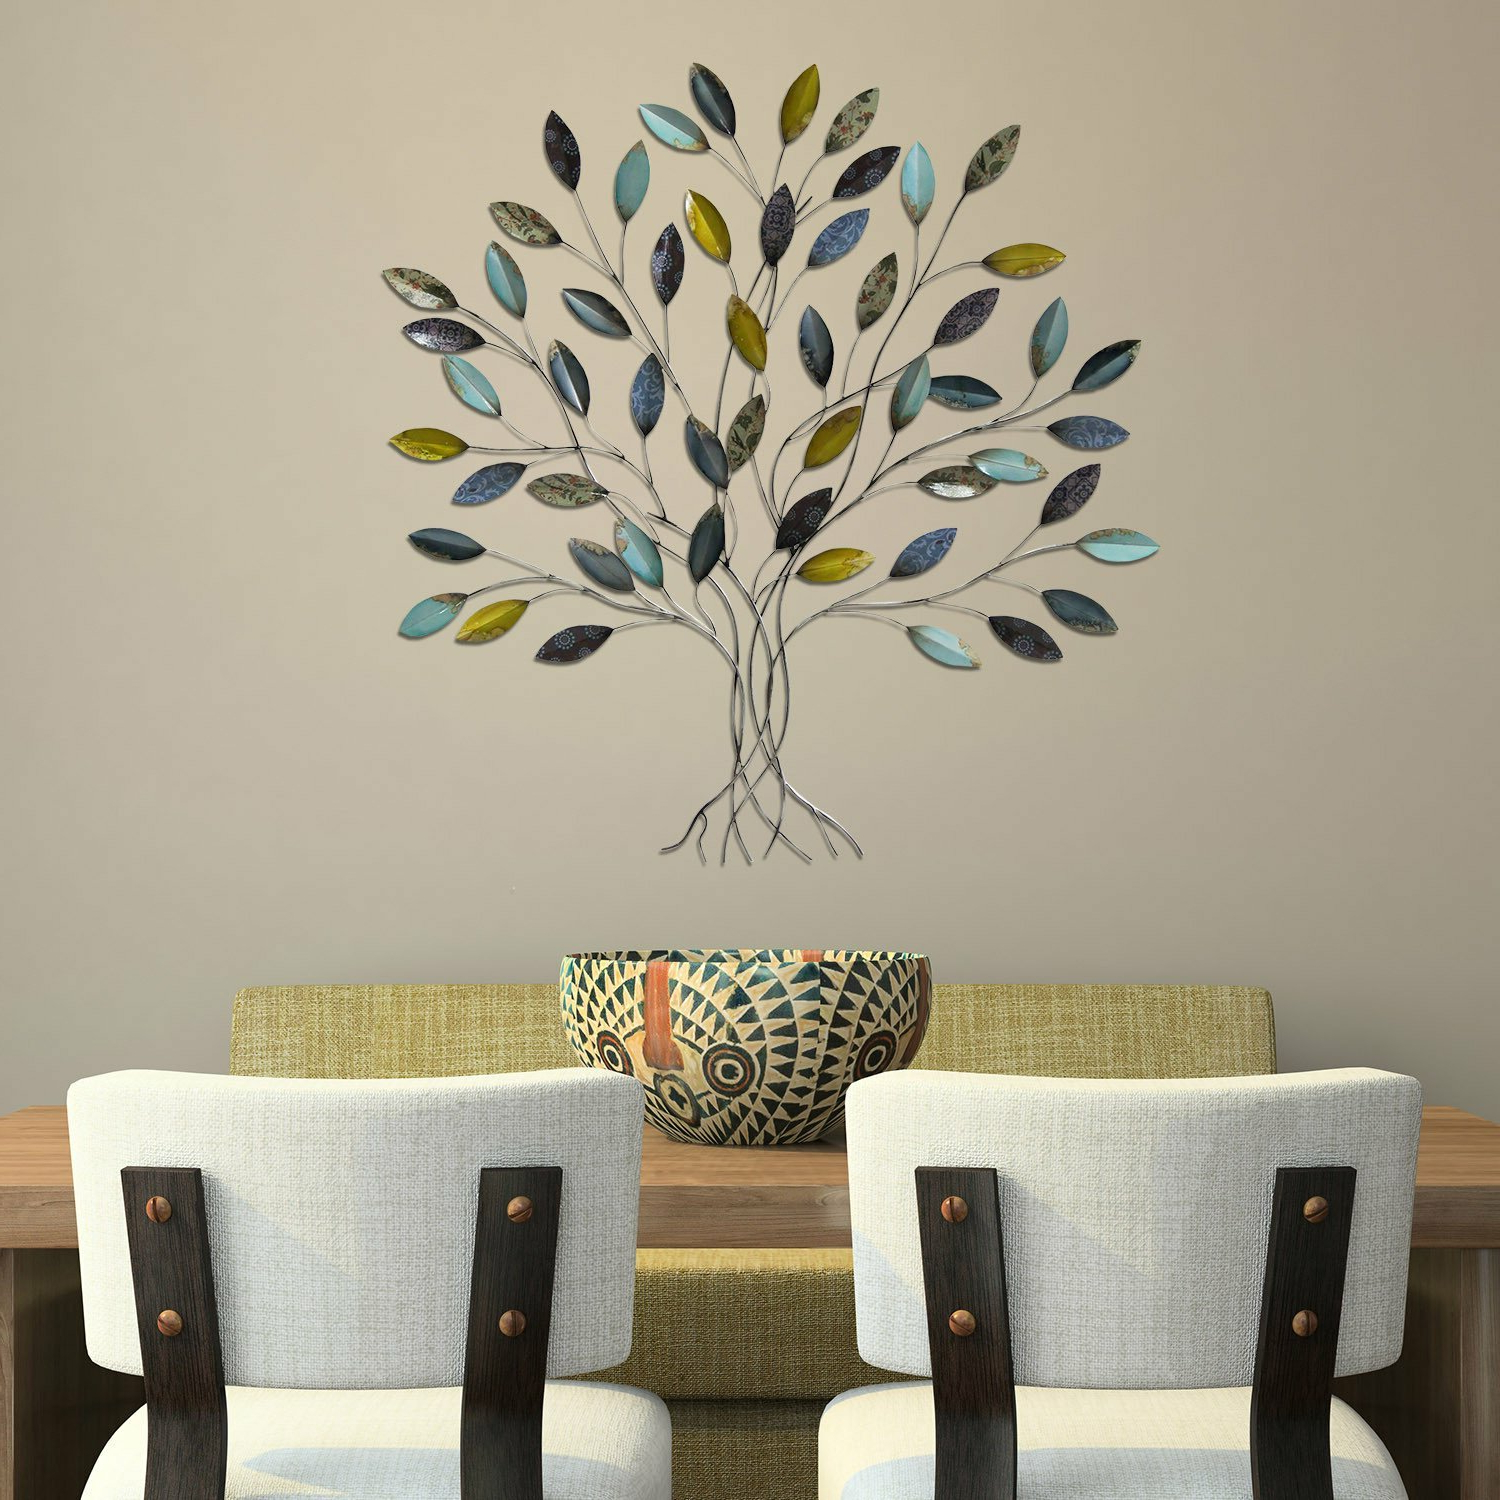 2019 Tree Branch Wall Décor By Fleur De Lis Living Intended For Whimsical Tree Wall Décor (View 13 of 20)